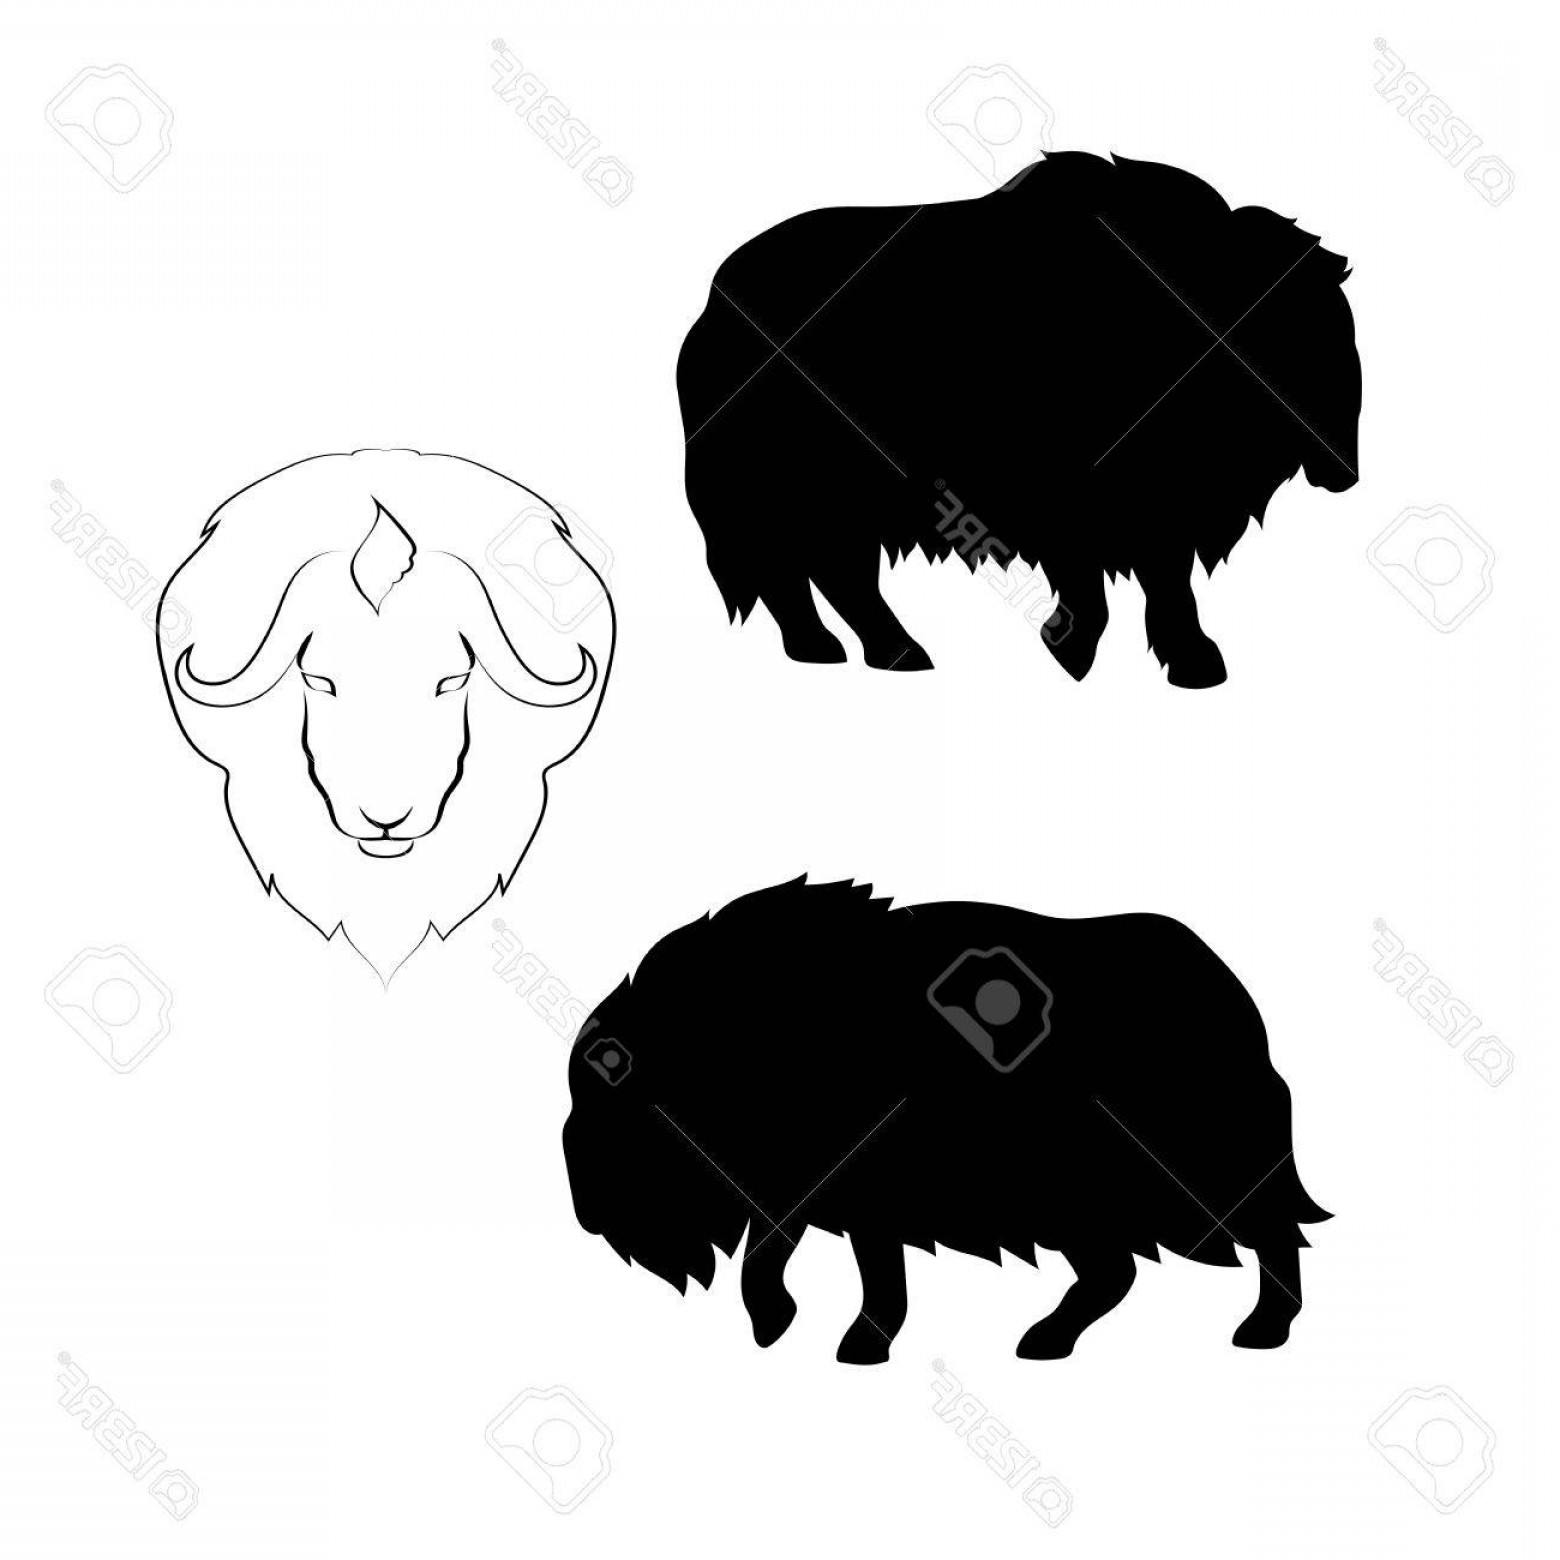 Ox Vector: Photostock Vector Musk Ox Vector Icons And Silhouettes Set Of Illustrations In Different Poses